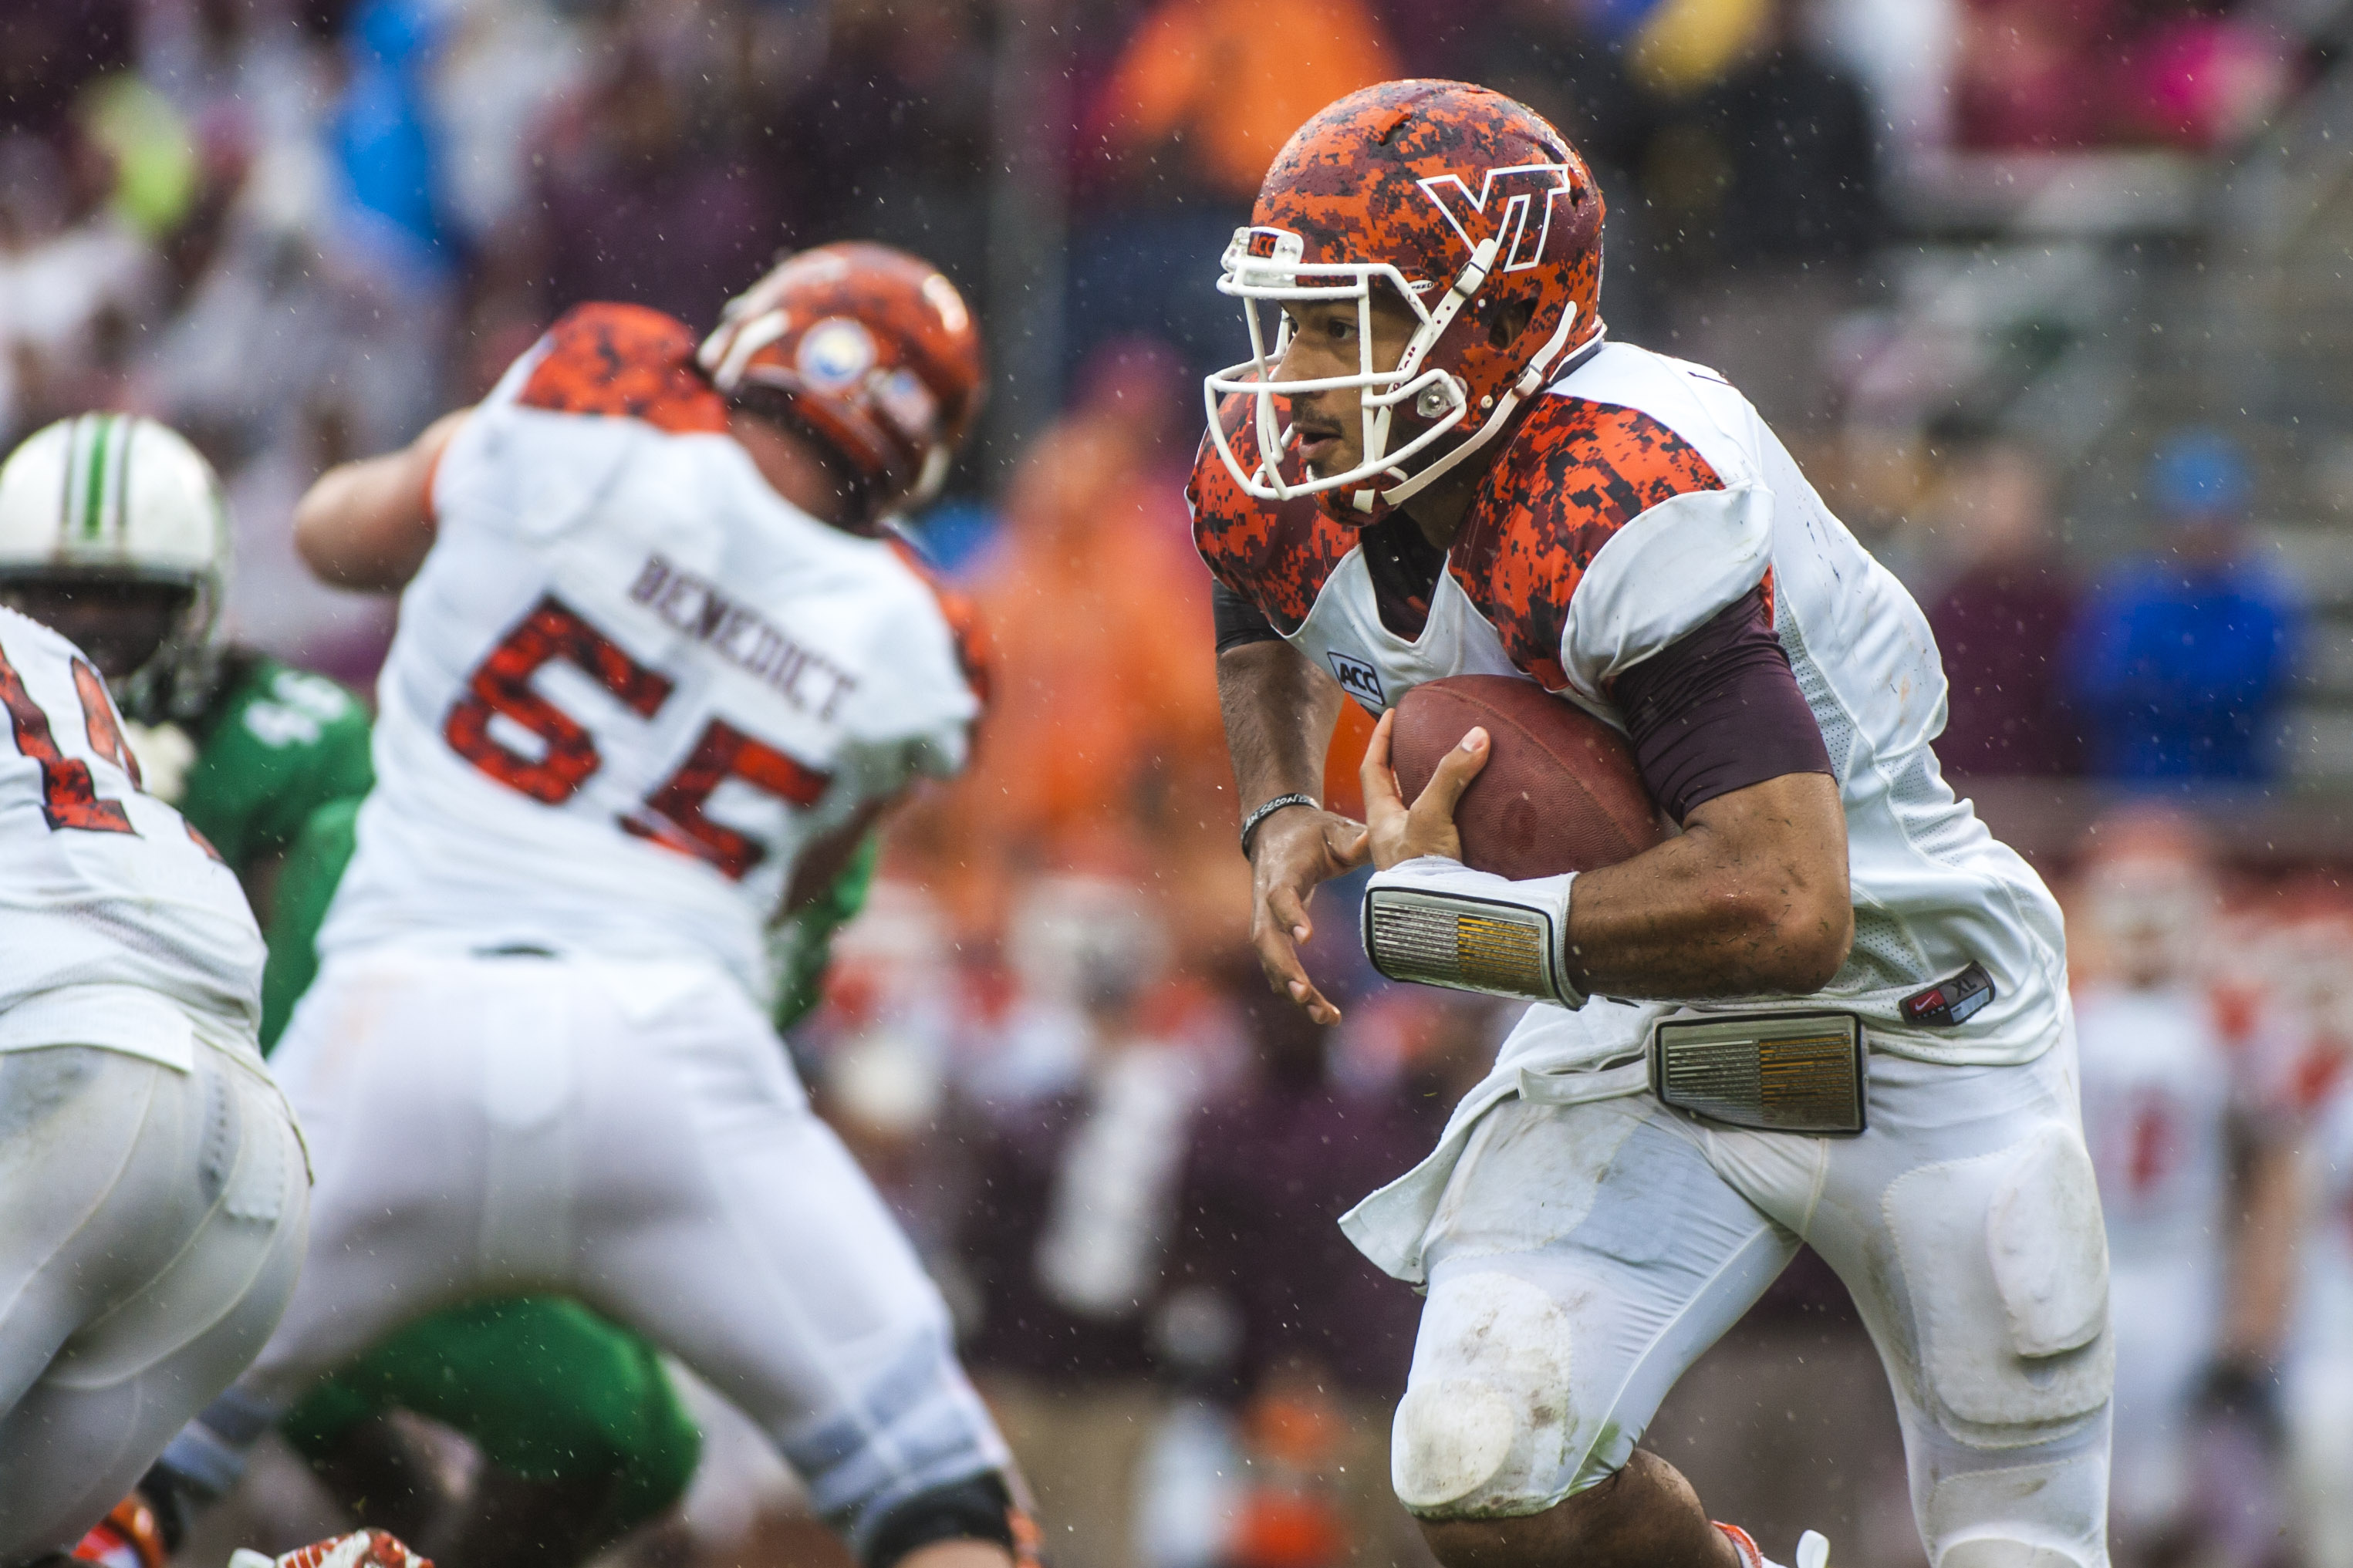 Sep 21, 2013; Blacksburg, VA, USA; Virginia Tech Hokies quarterback Logan Thomas (3) runs the ball against the Marshall Thundering Herd during the second half at Lane Stadium. (Peter Casey-USA TODAY Sports)